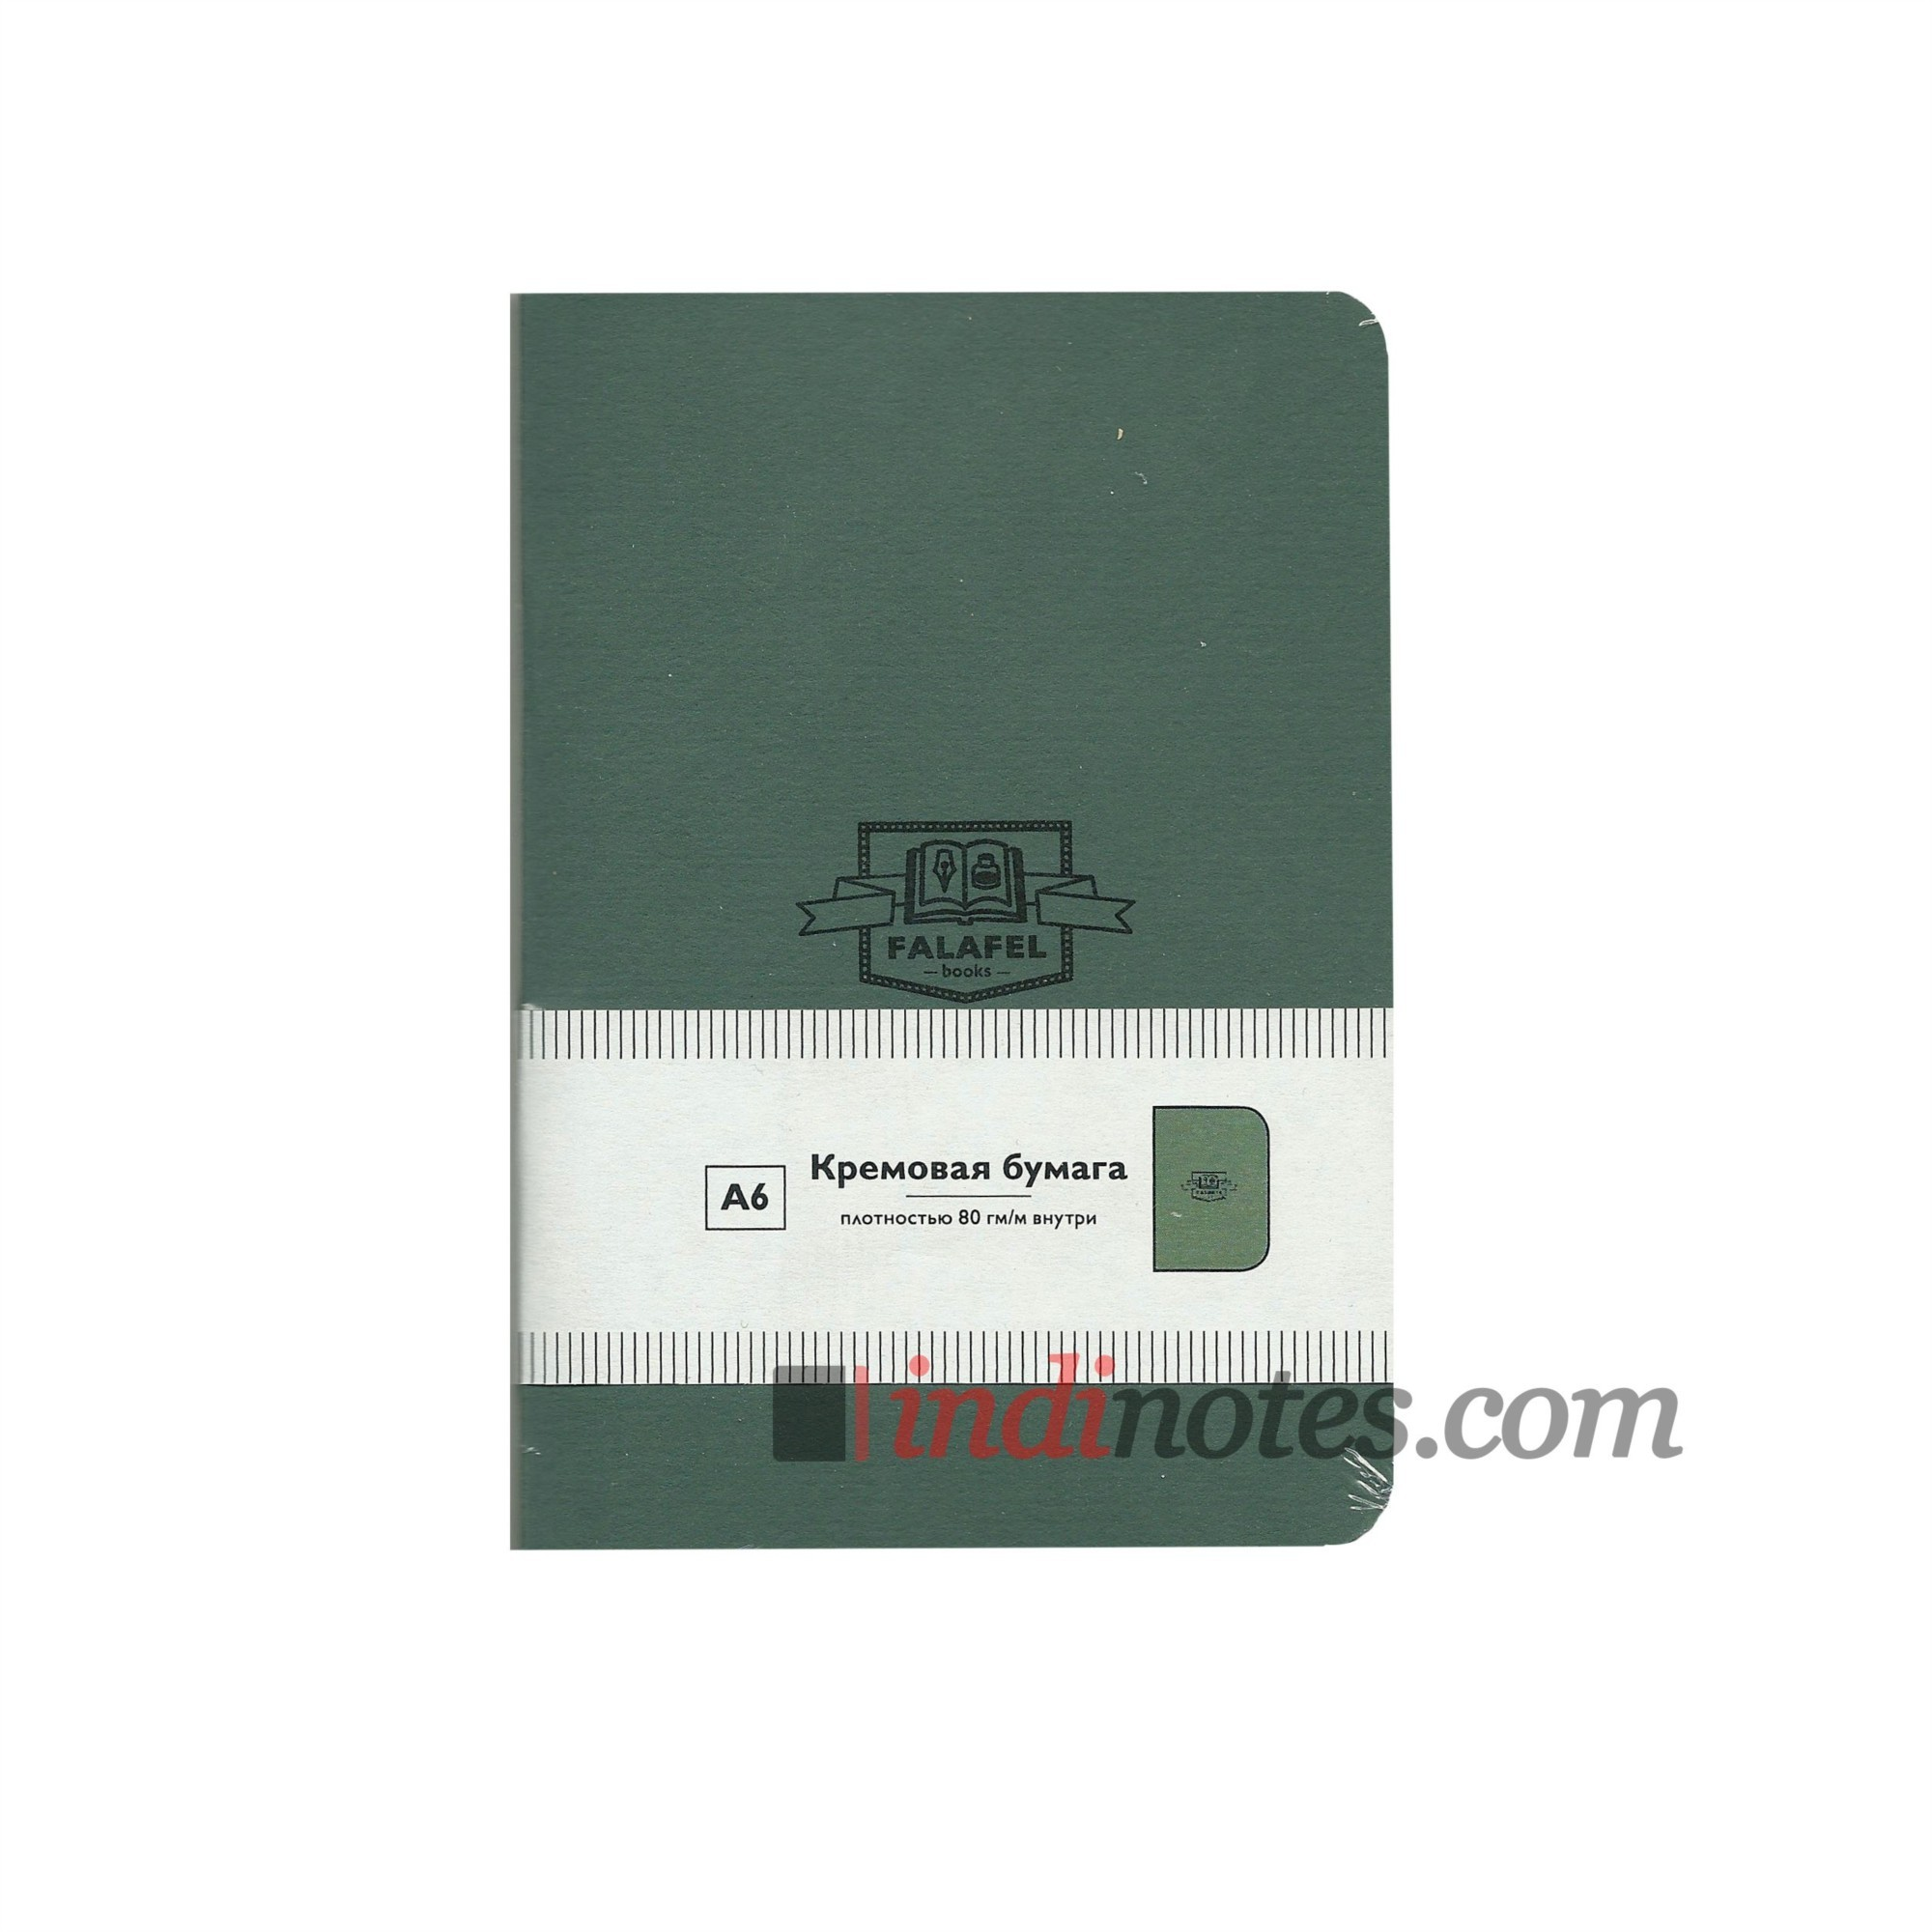 Скетчбук Falafel books Dark Green А6